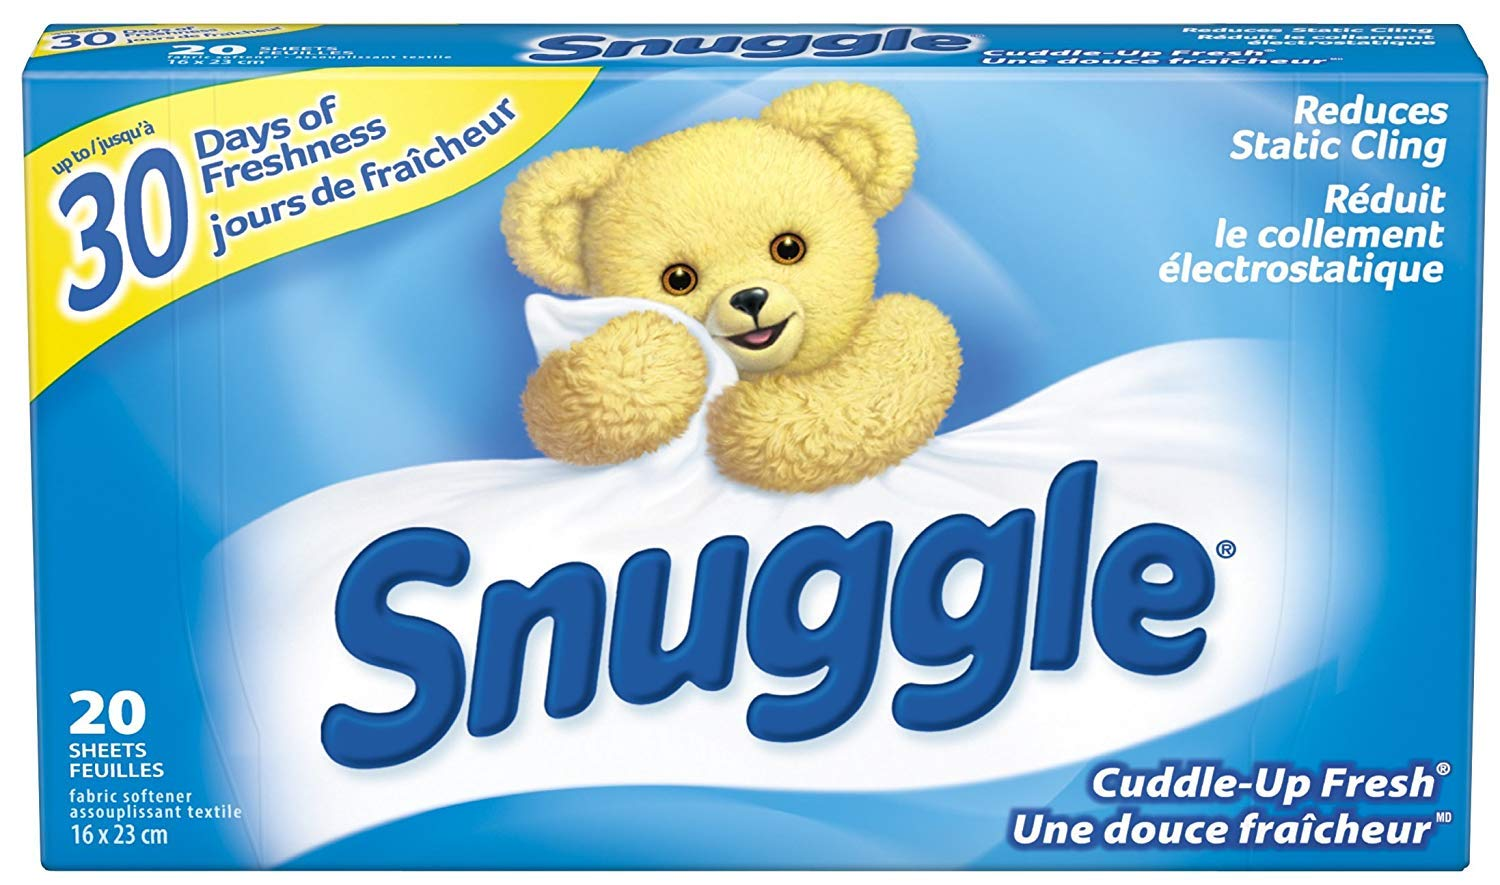 Snuggle Fabric Softner Dryer Sheets, Cuddle Up Fresh Scent, Reduces Static Cling - 480 Count by Snuggle (Image #1)